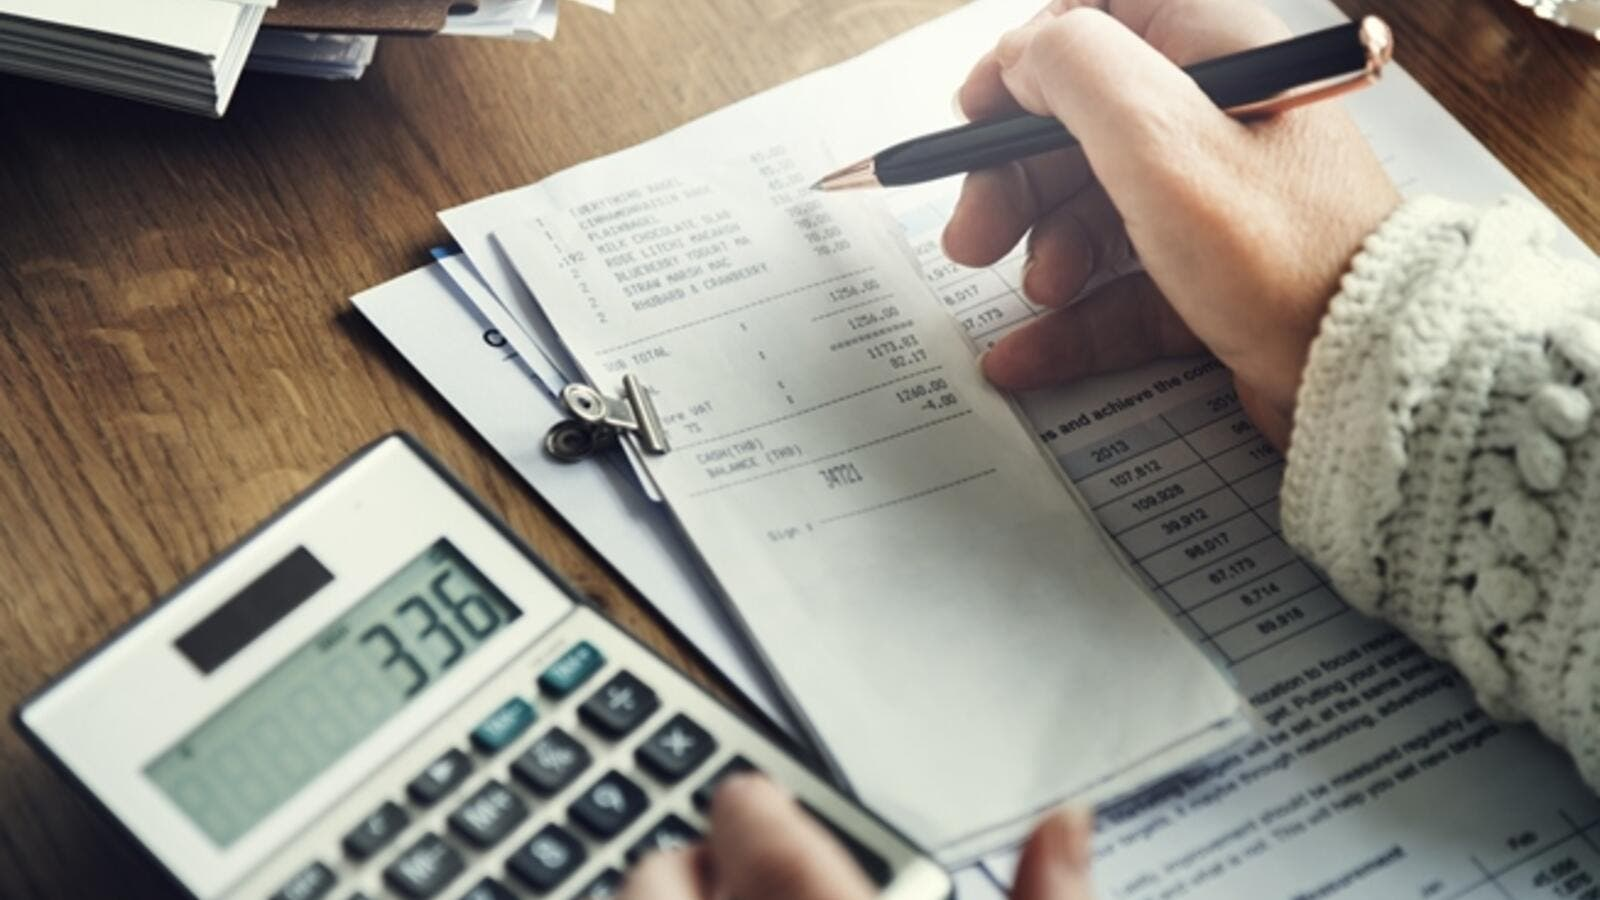 The majority of UAE residents (62 percent) expect the introduction of VAT to be a challenge for the country, according to a survey by YouGov. (Shutterstock)